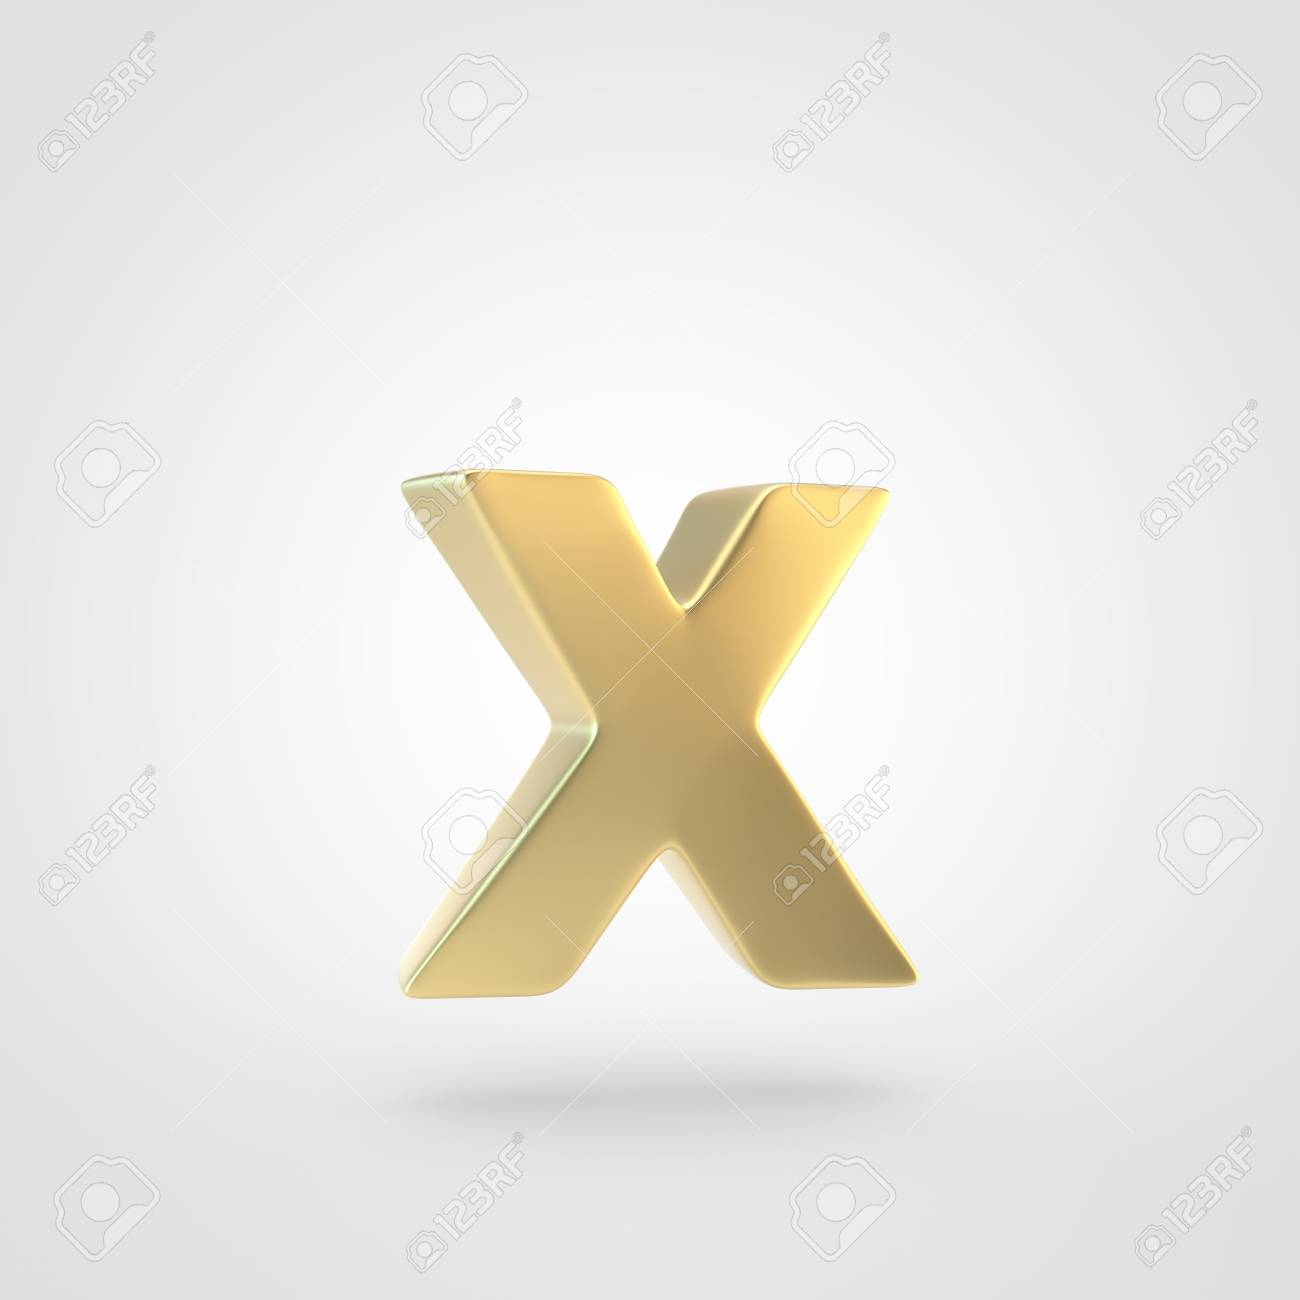 Golden Letter X Lowercase 3D Rendering Of Matted Golden Font 1300x1300